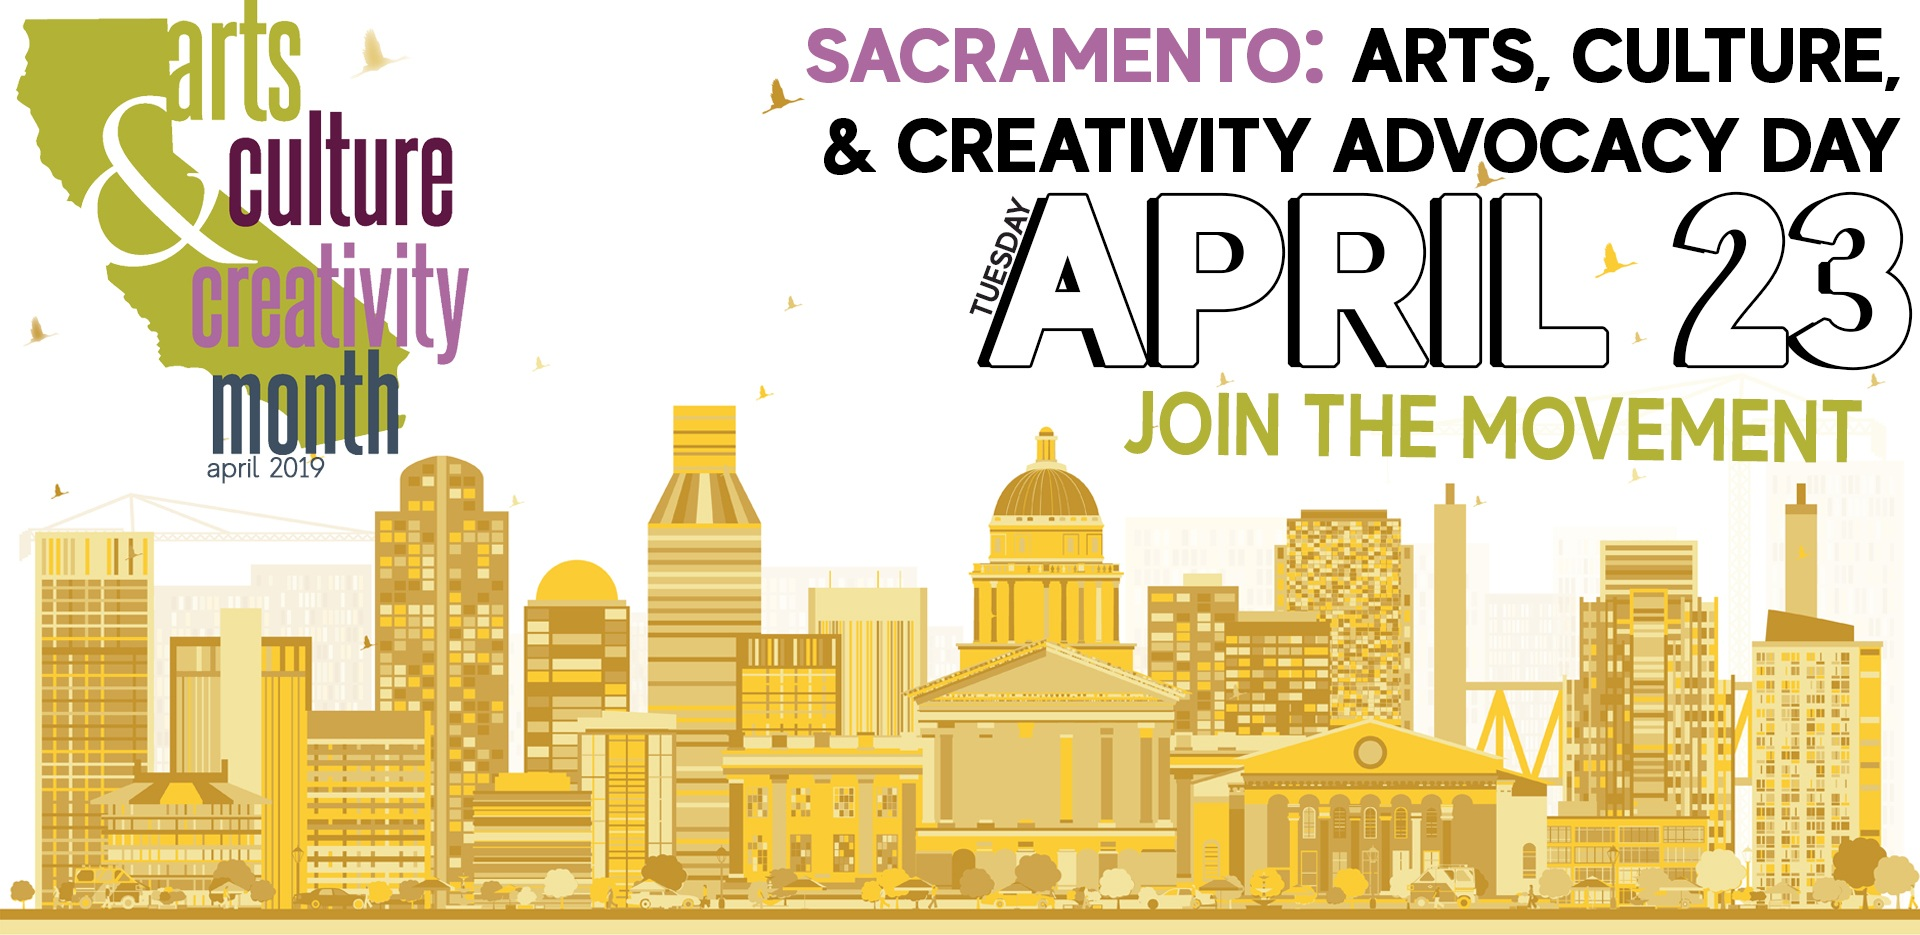 Brought to you by Californians for the Arts and California Arts Advocates. Click image above for more info